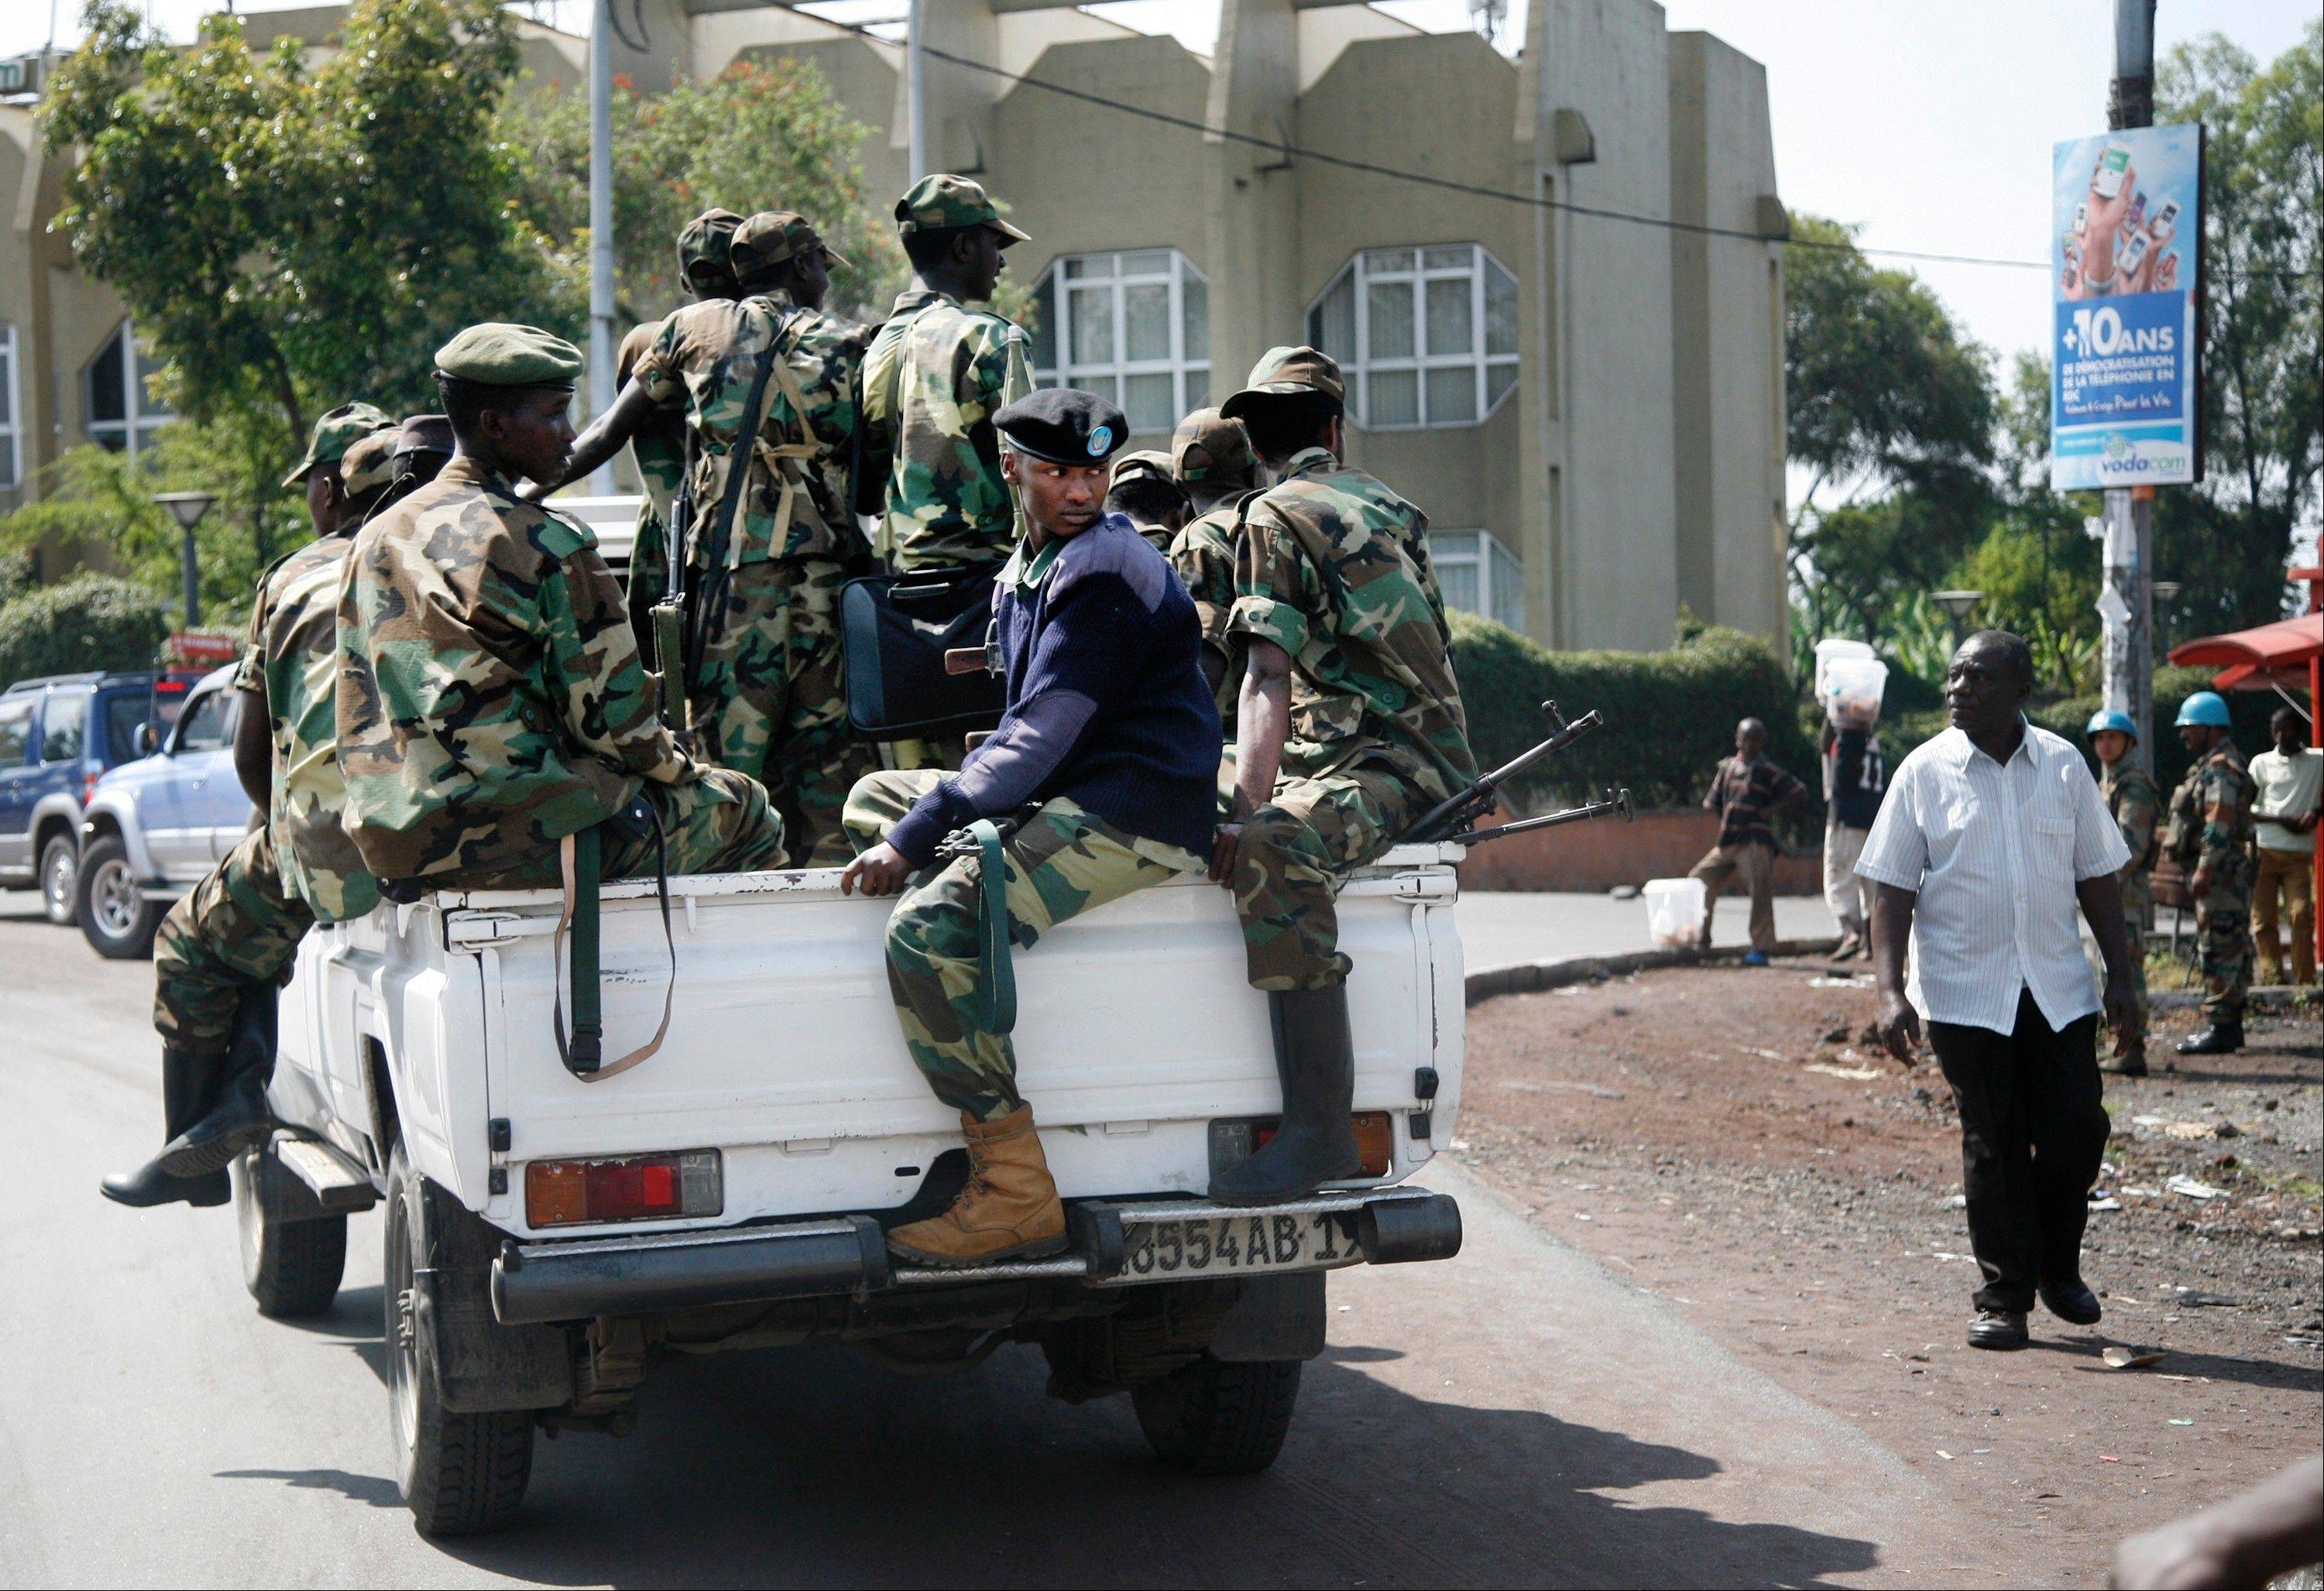 Congo's M23 rebels defied a deadline imposed by neighboring nations, saying Tuesday the insurgents will stay in the crucial, eastern city of Goma and will fight the Congolese army if it tries to retake it.